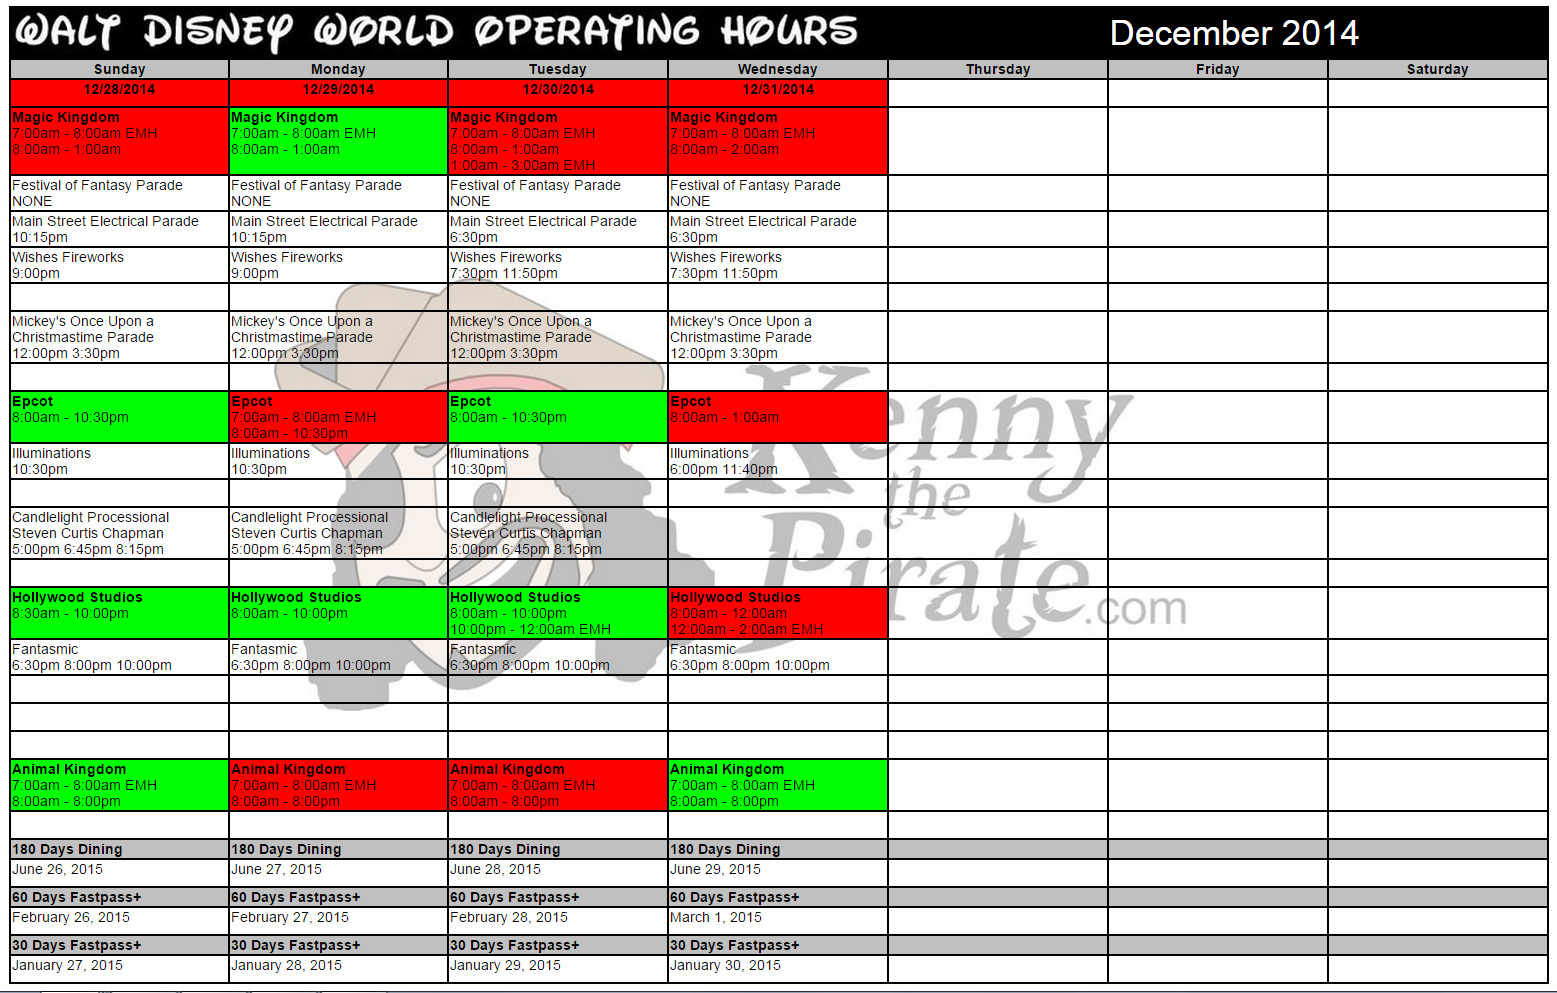 KennythePirate's December Walt Disney World Crowd Calendar with Dining and Fastpass+ Booking Dates